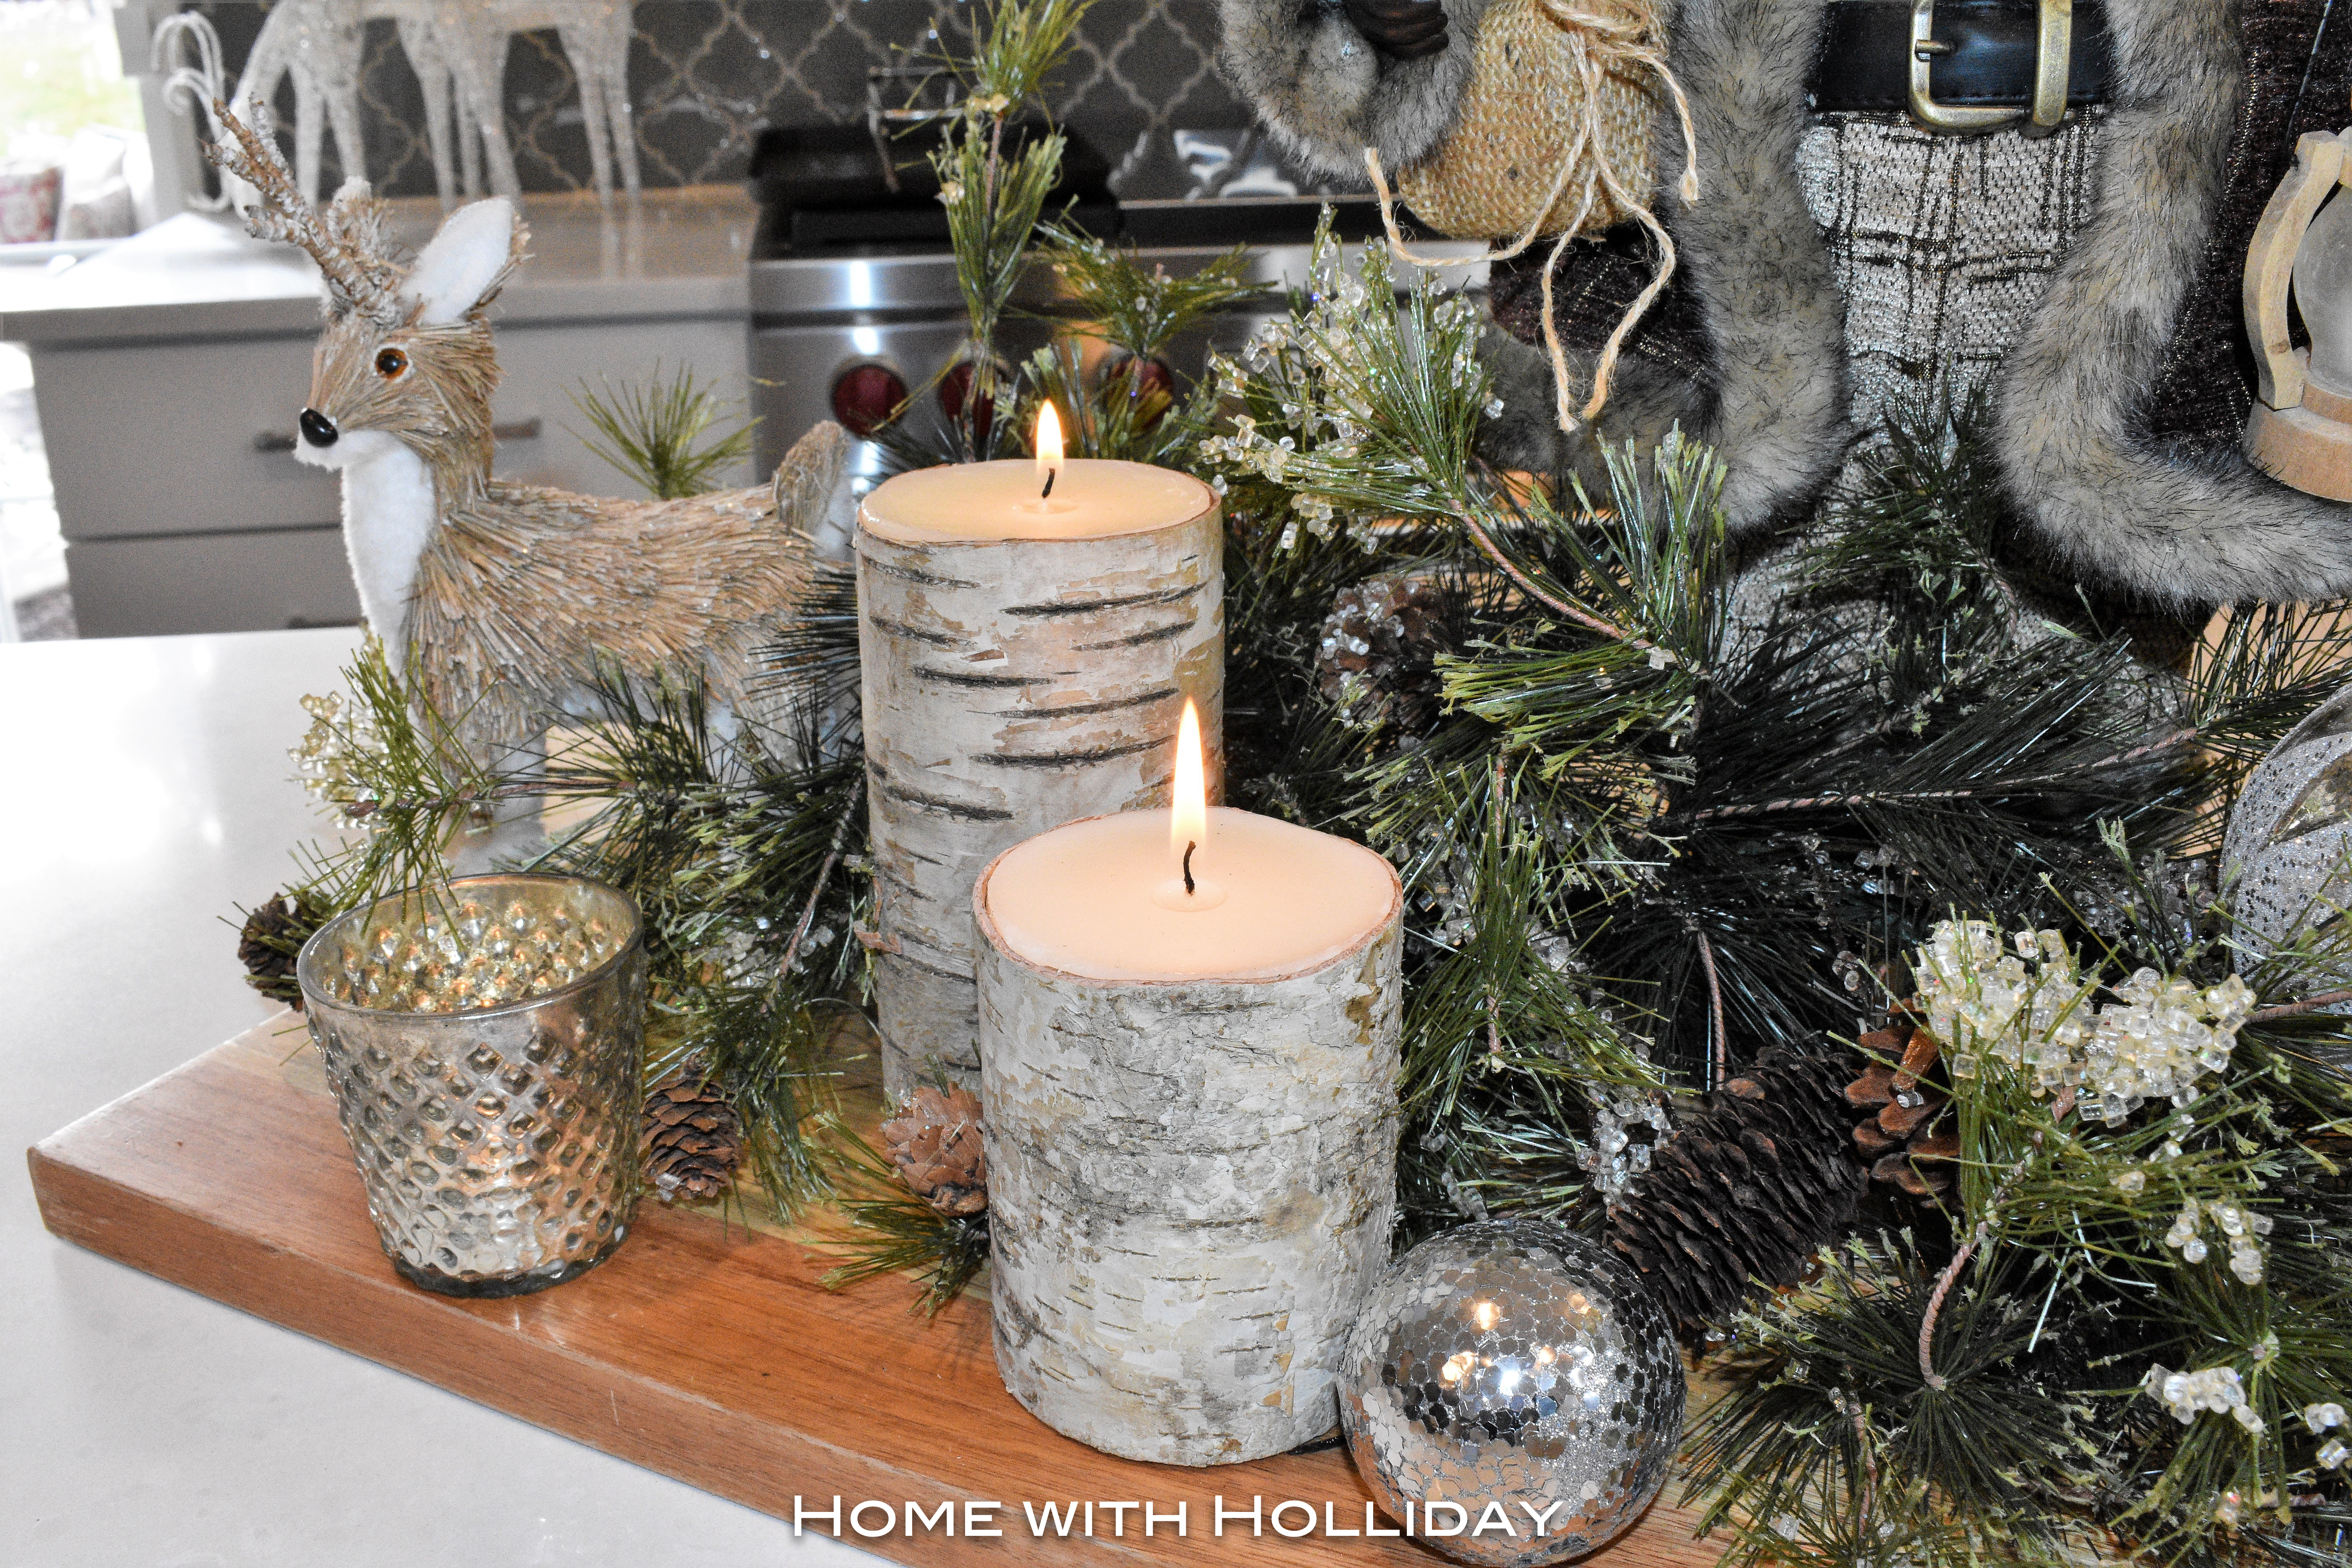 Rustic Winter Christmas Centerpiece with Birch Candles - Home with Holliday